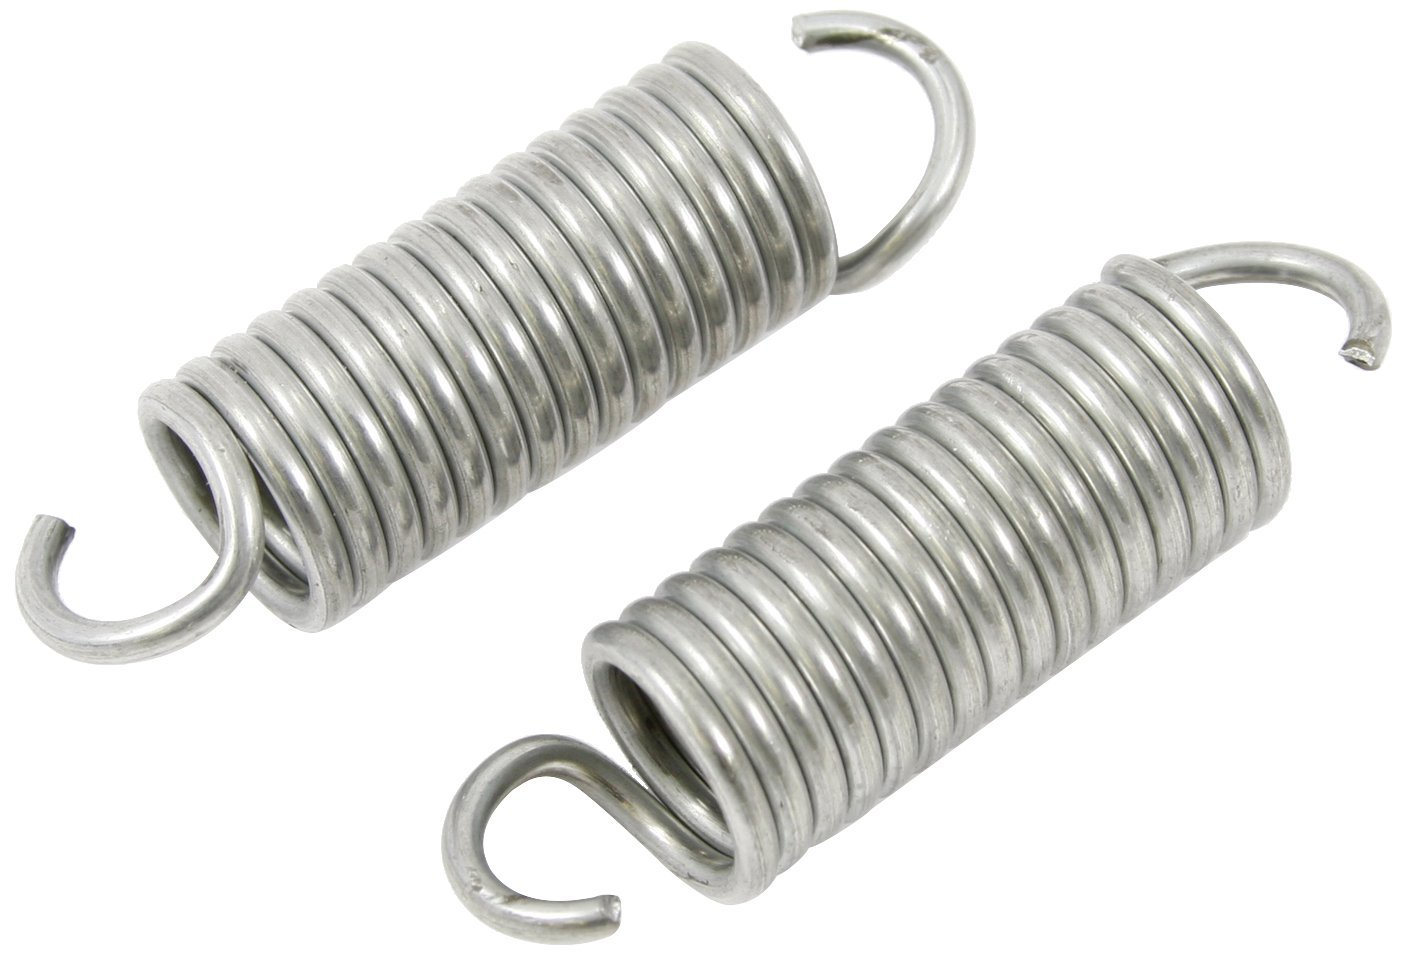 Forney 72544 Wire Spring Extension, 3/4-Inch-by-2-5/8-Inch-by-.105-Inch, 2-Pack